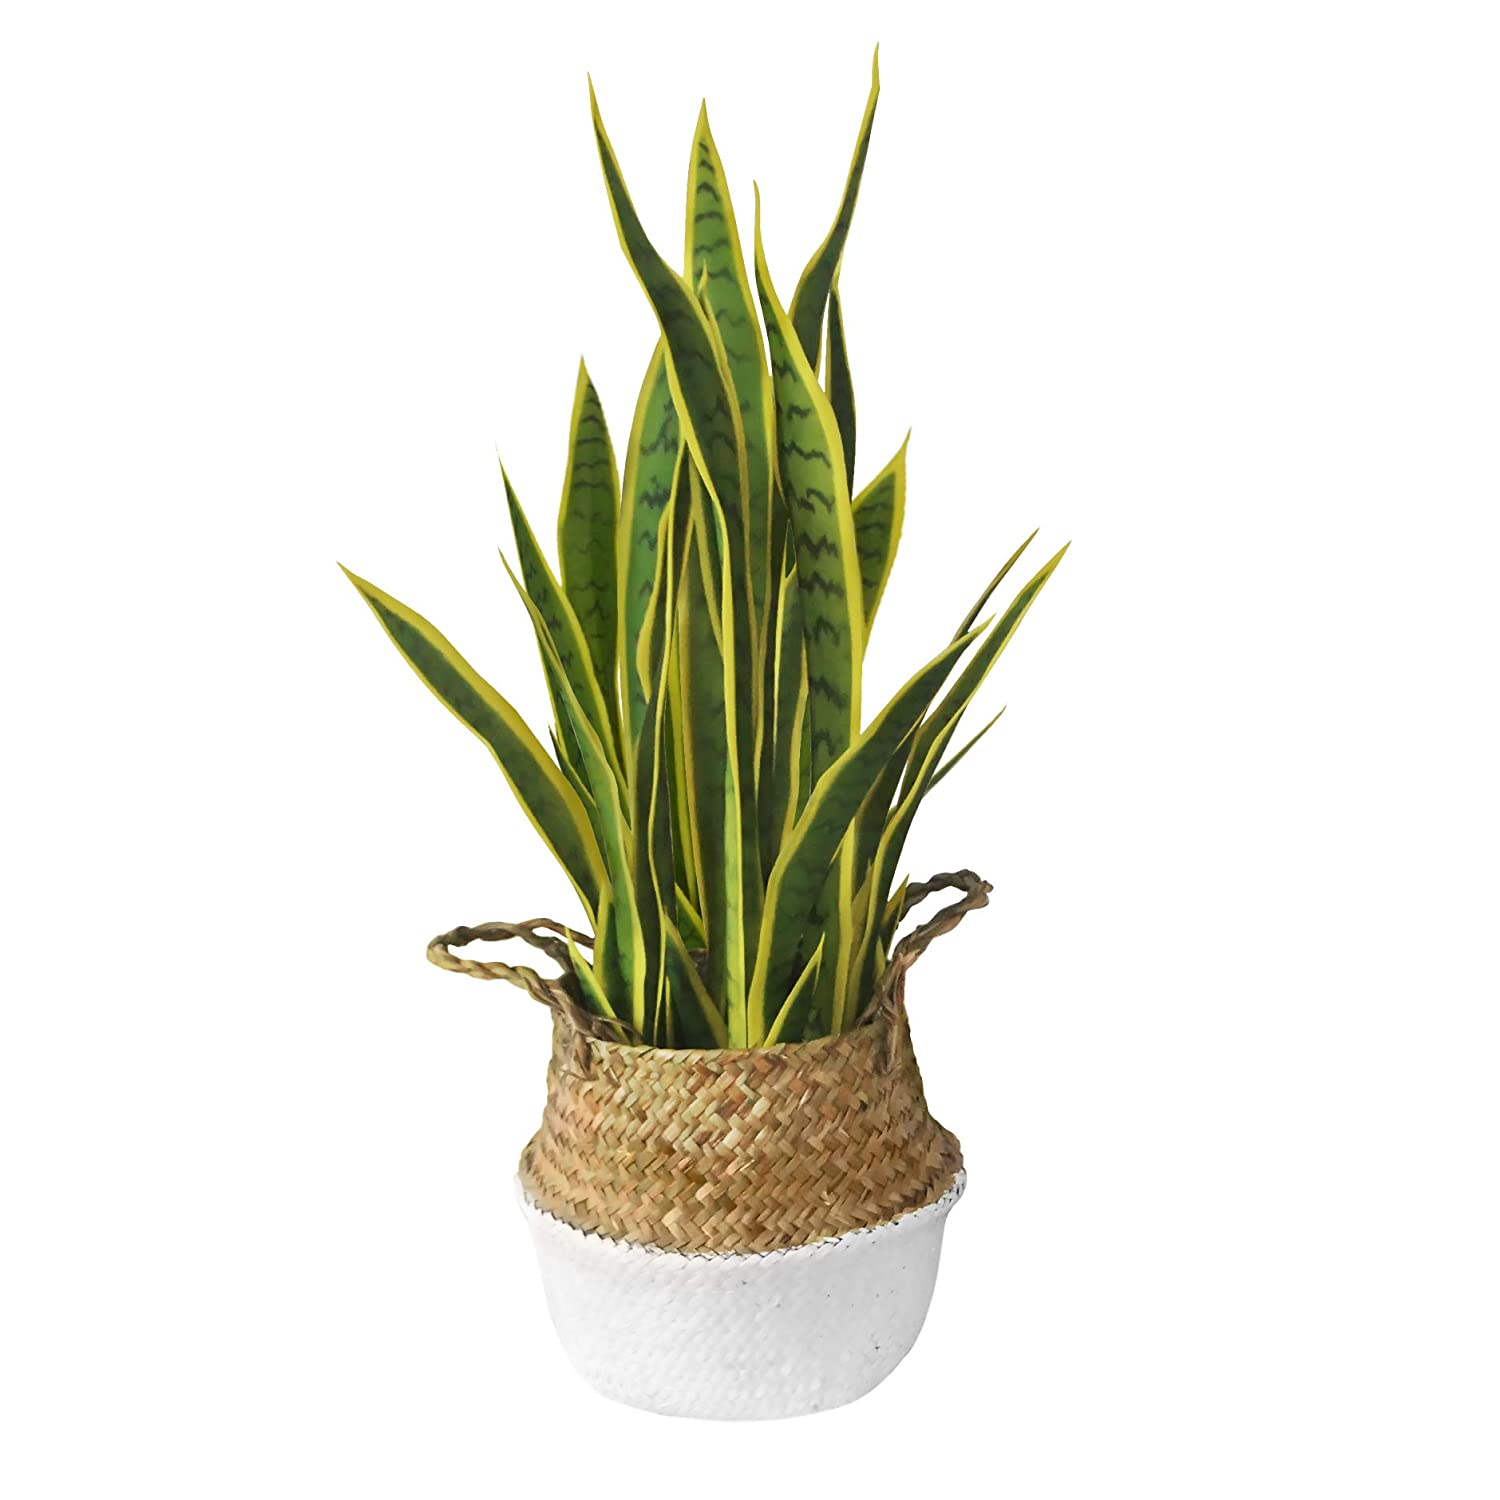 Artificial Plant with Woven Basket | Fake Plant in Seagrass Handmade Planter | Luxury Indoor Plant with Tall Yellow Leaves and Decorative Boho Chic Style | Ideal Housewarming or Office Gift, 27 Inches